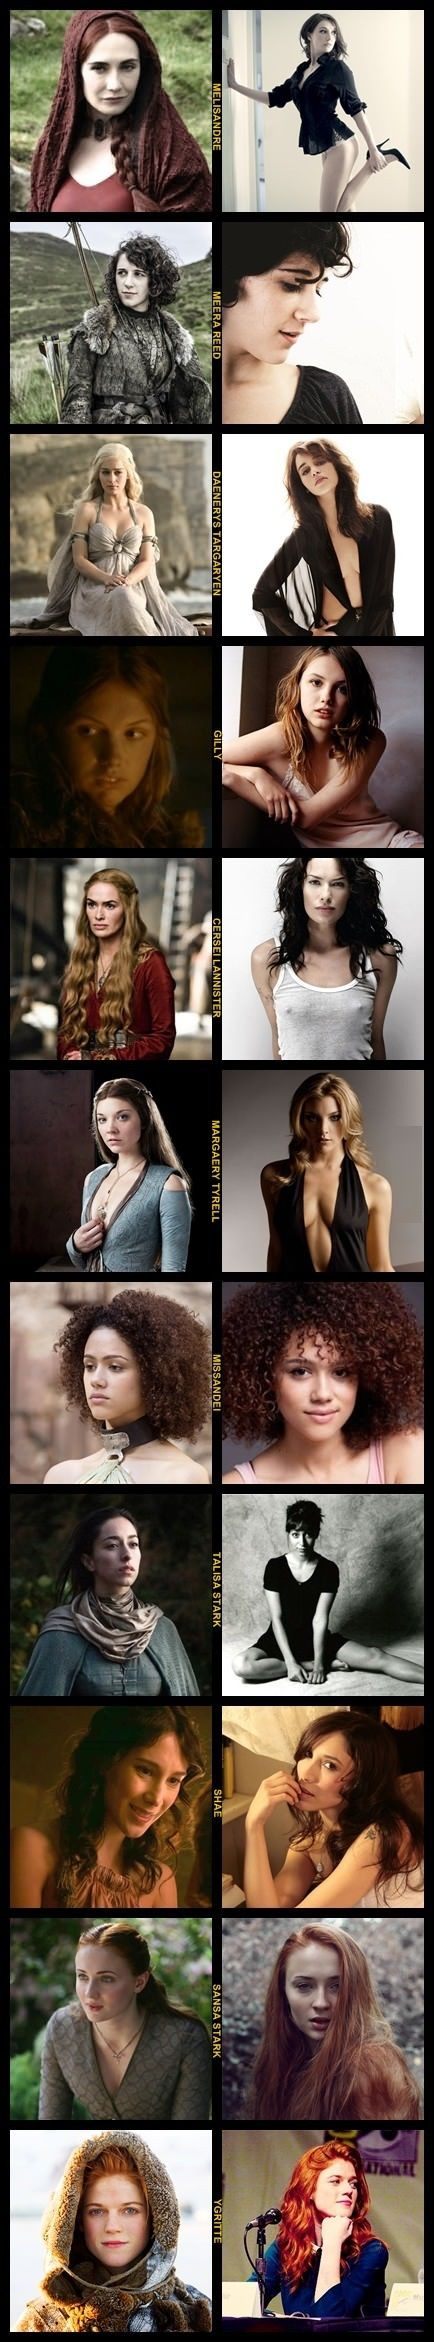 The Women of Game of Thrones and Their Actresses